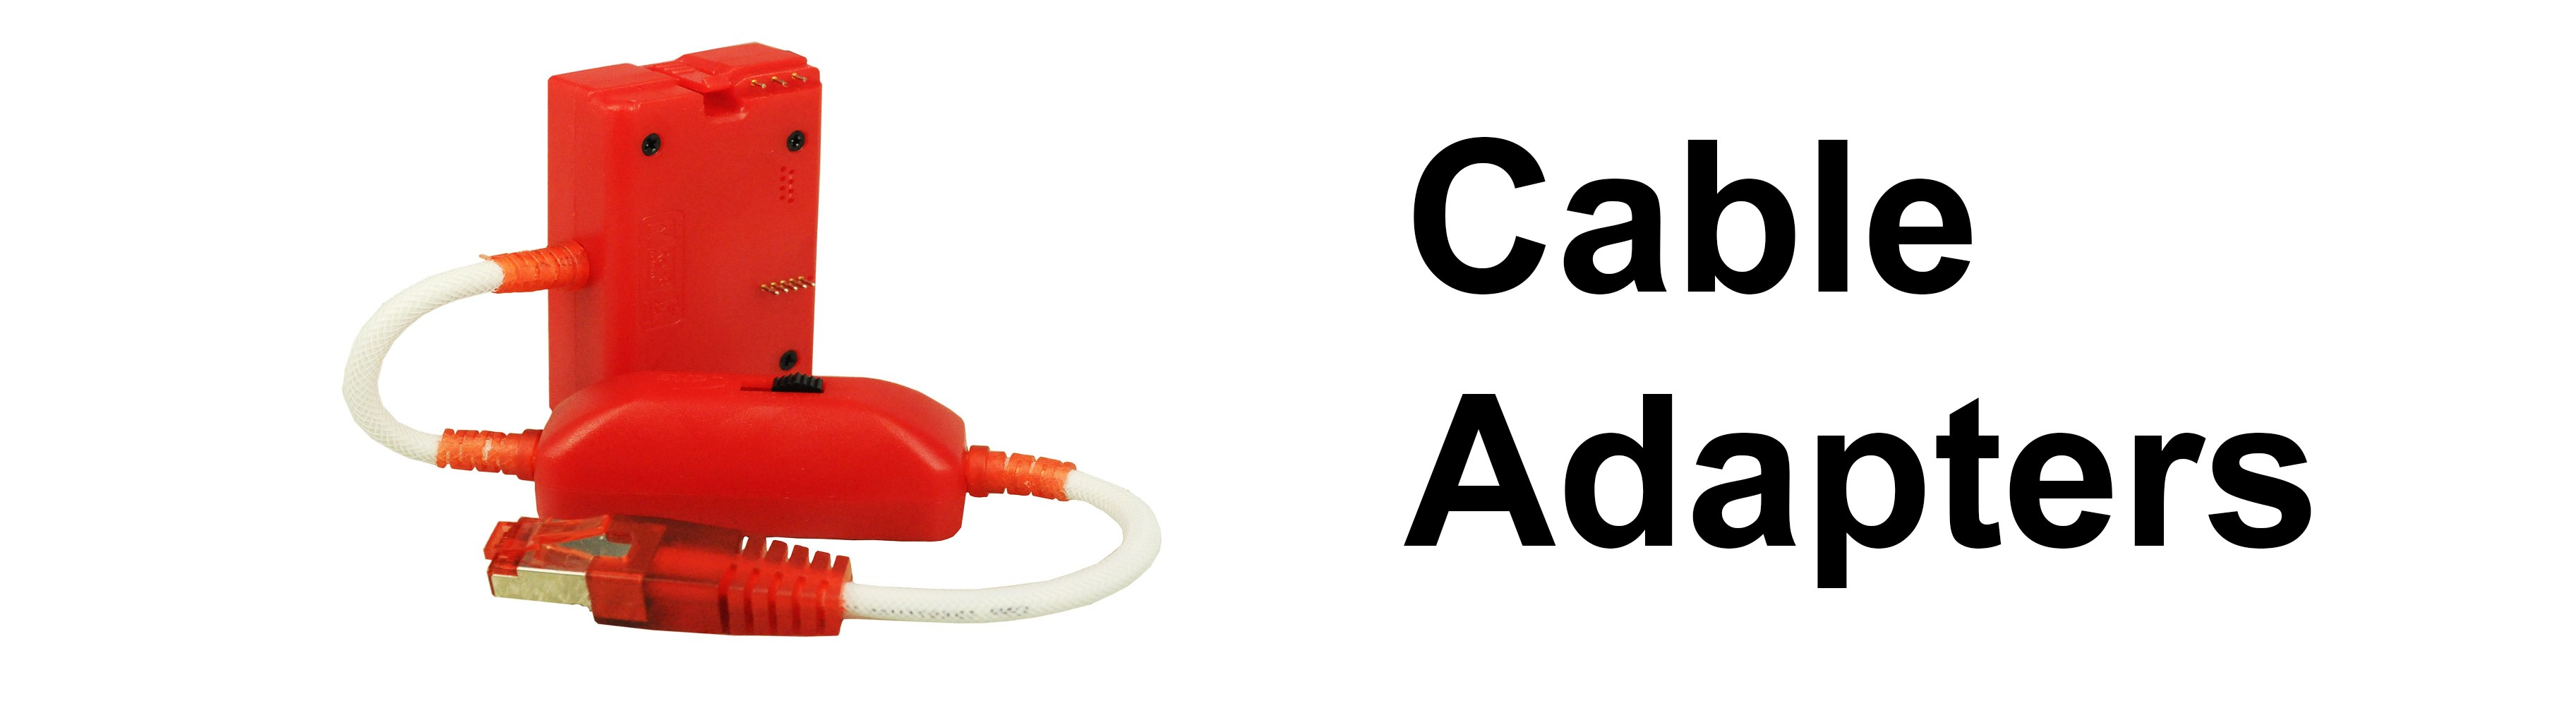 Service Cable For Cable Adapters